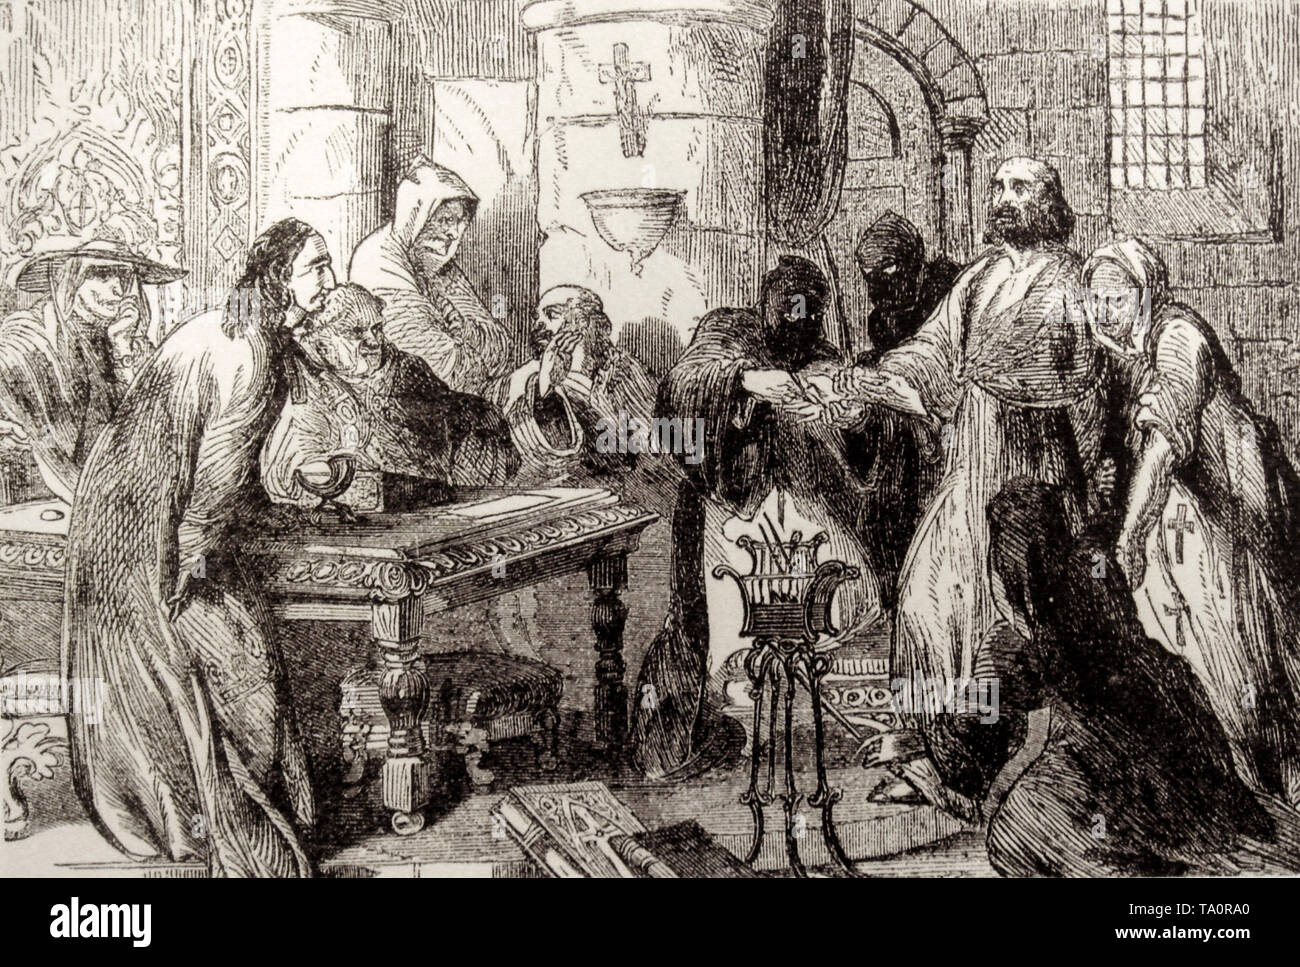 Interrogation Of Jacques De Molay, Grand Master of the Knights Templar, 19th Century engraving - Stock Image